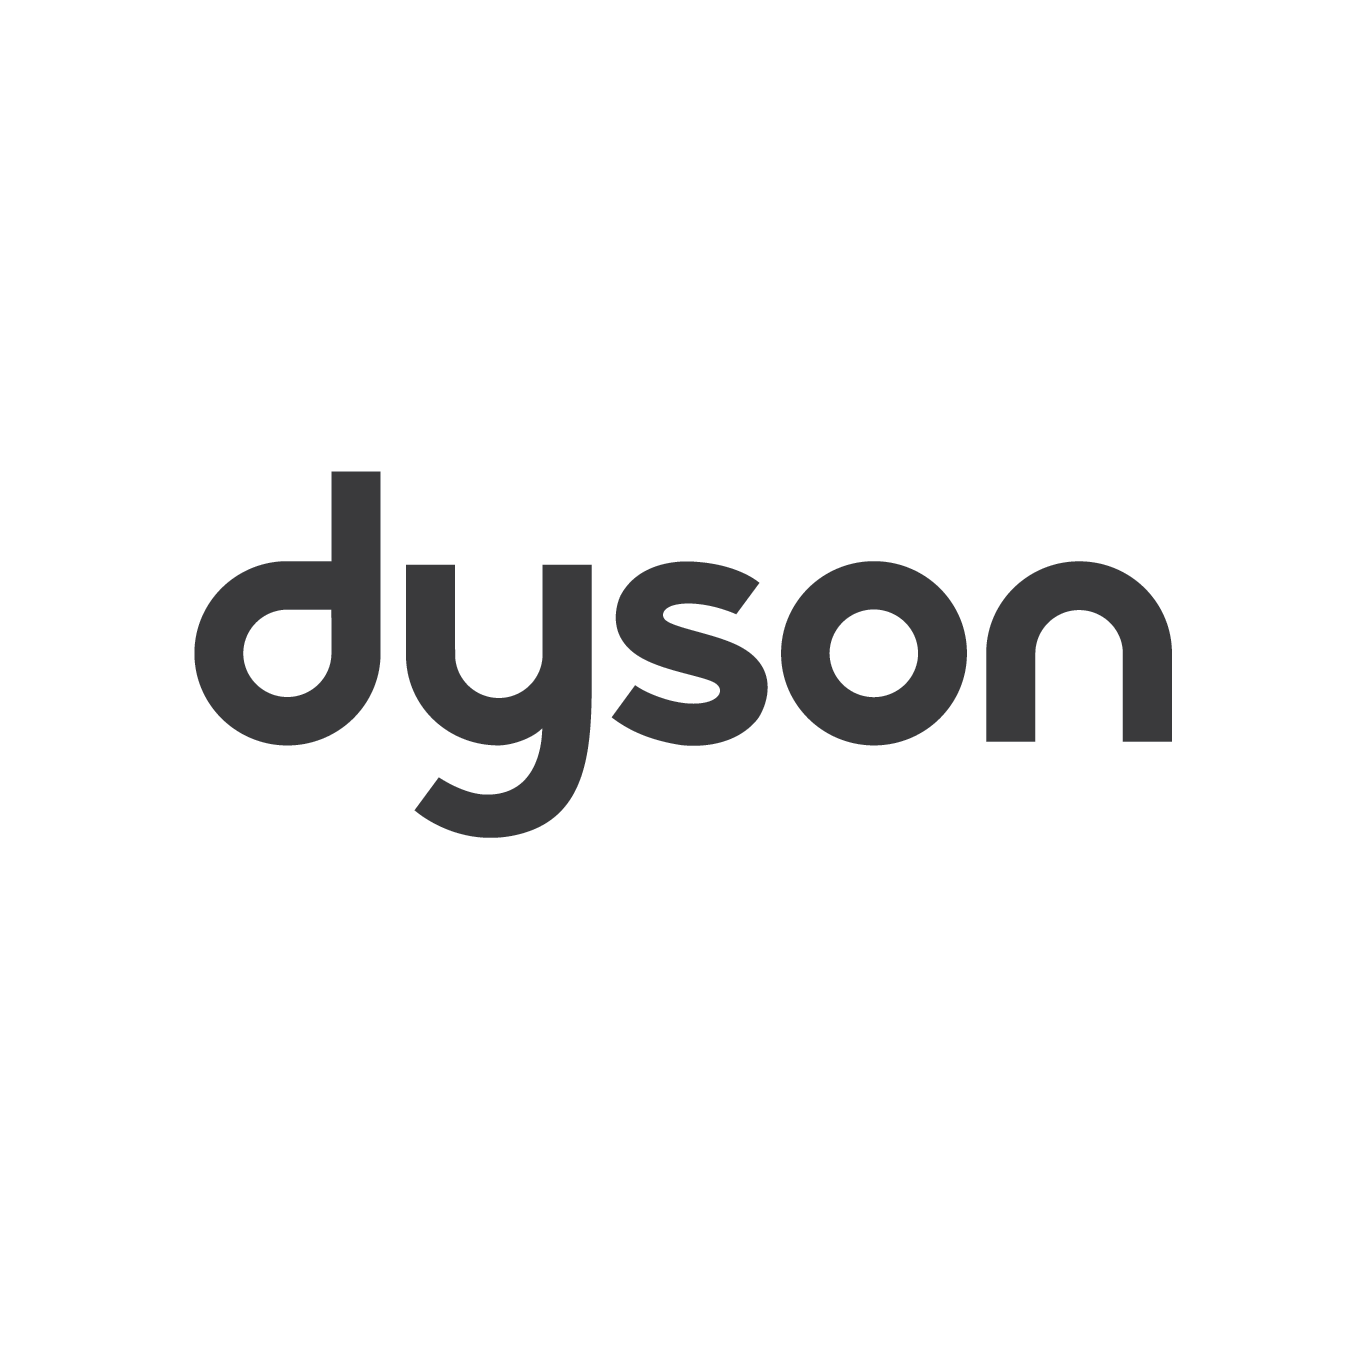 dyson.png